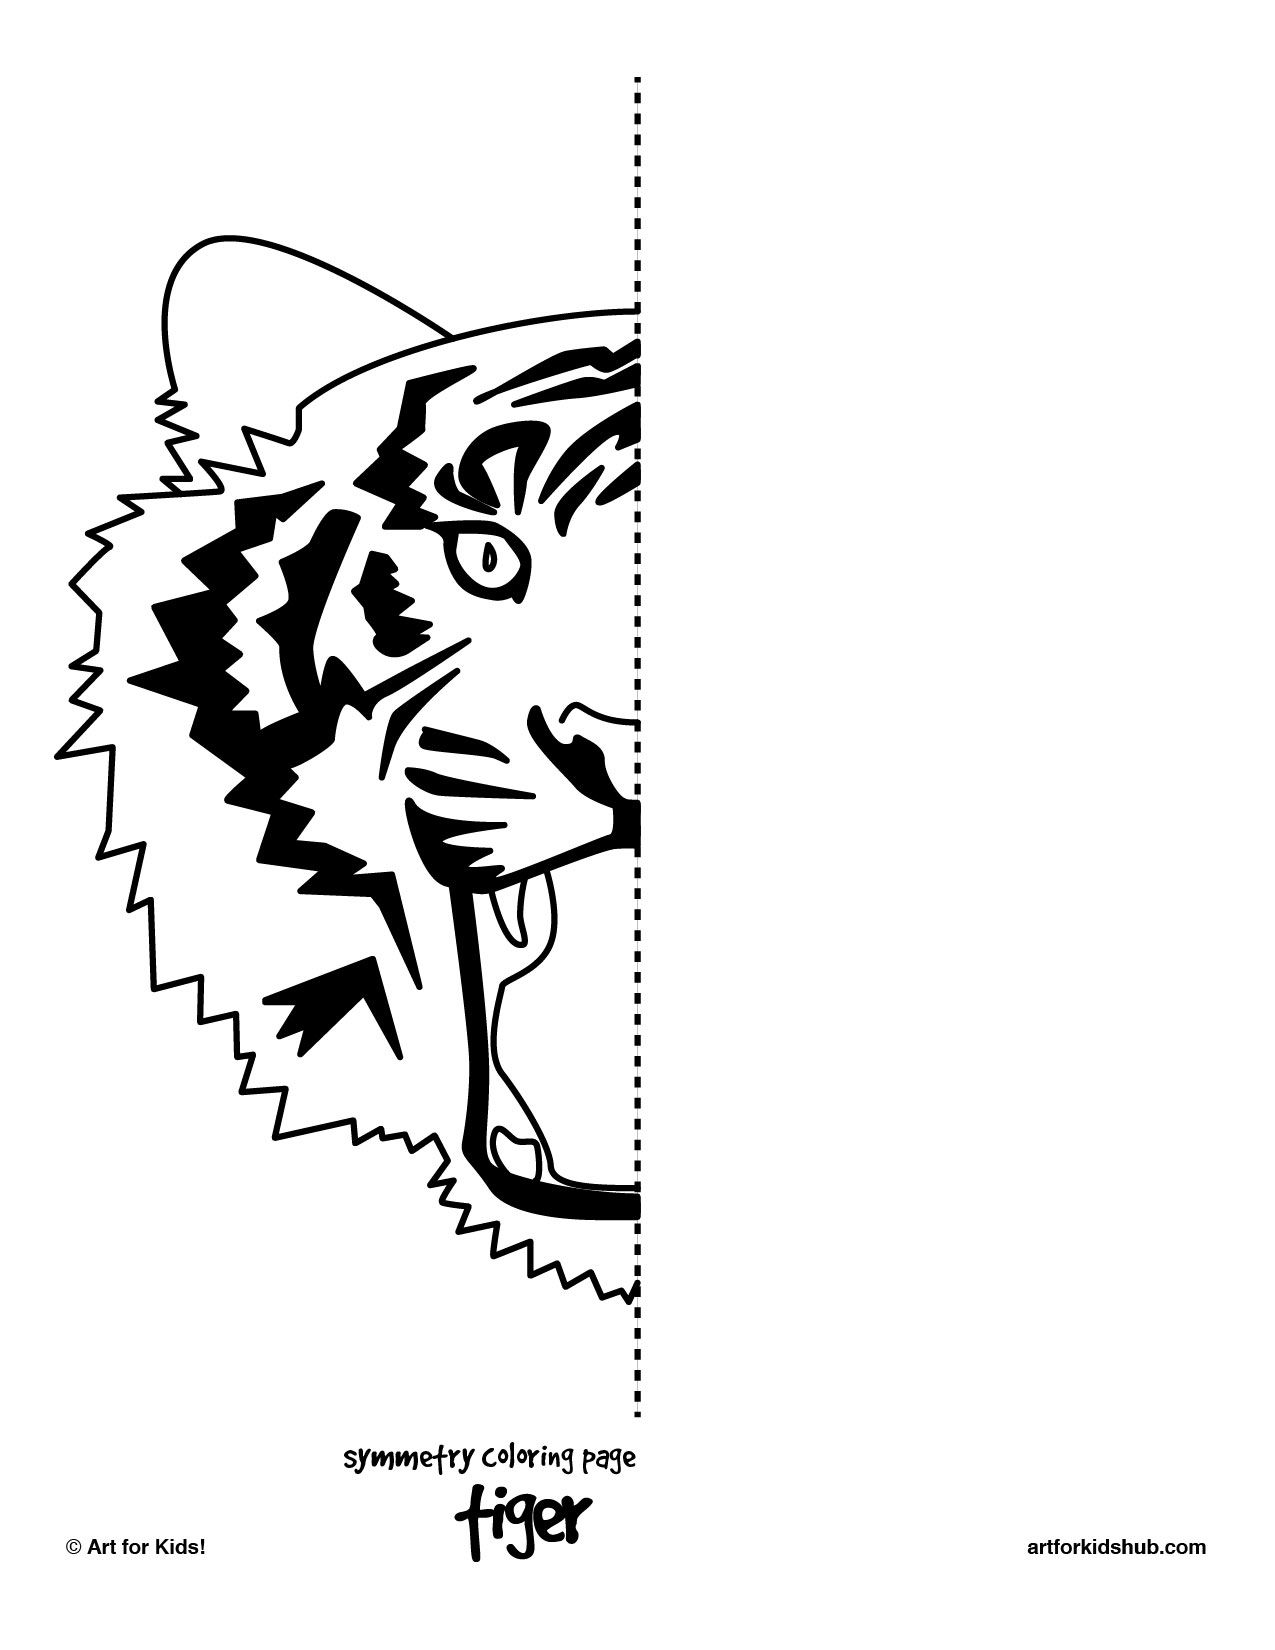 medium resolution of Symmetry ART Activity - 5 Free Coloring Pages - Art for Kids   Symmetry  art